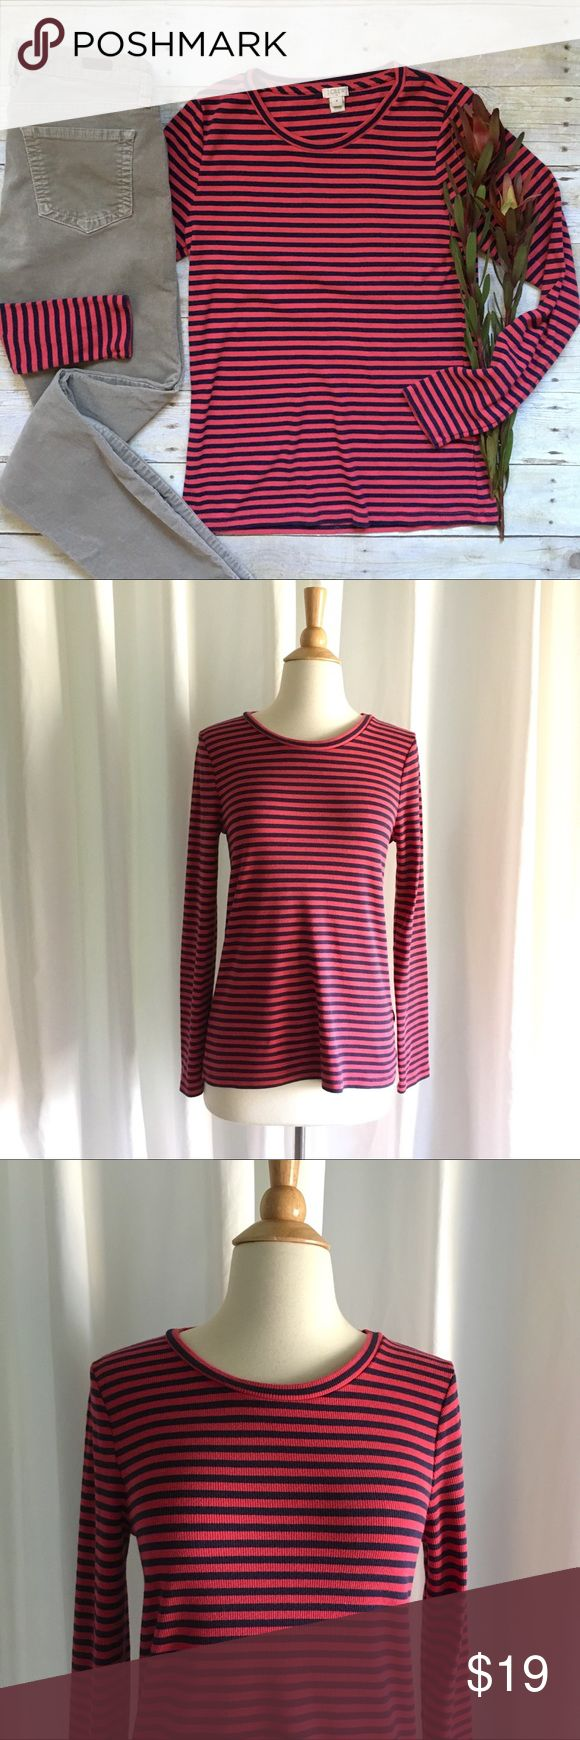 """J. Crew fine-rib striped long sleeve tee A perfect tee for fall! Layer under your favorite cardigan or blazer. Or tuck into highwaist pants and add ankle boots and a hat. Like new. 57/38/5 cotton, viscose, elastane. Factory exclusive. 24.5""""L. 17"""" bust unstretched and laying flat. Size medium. *Outfits pictured are also for sale in my closet, buy the look and save! J. Crew Tops Tees - Long Sleeve"""